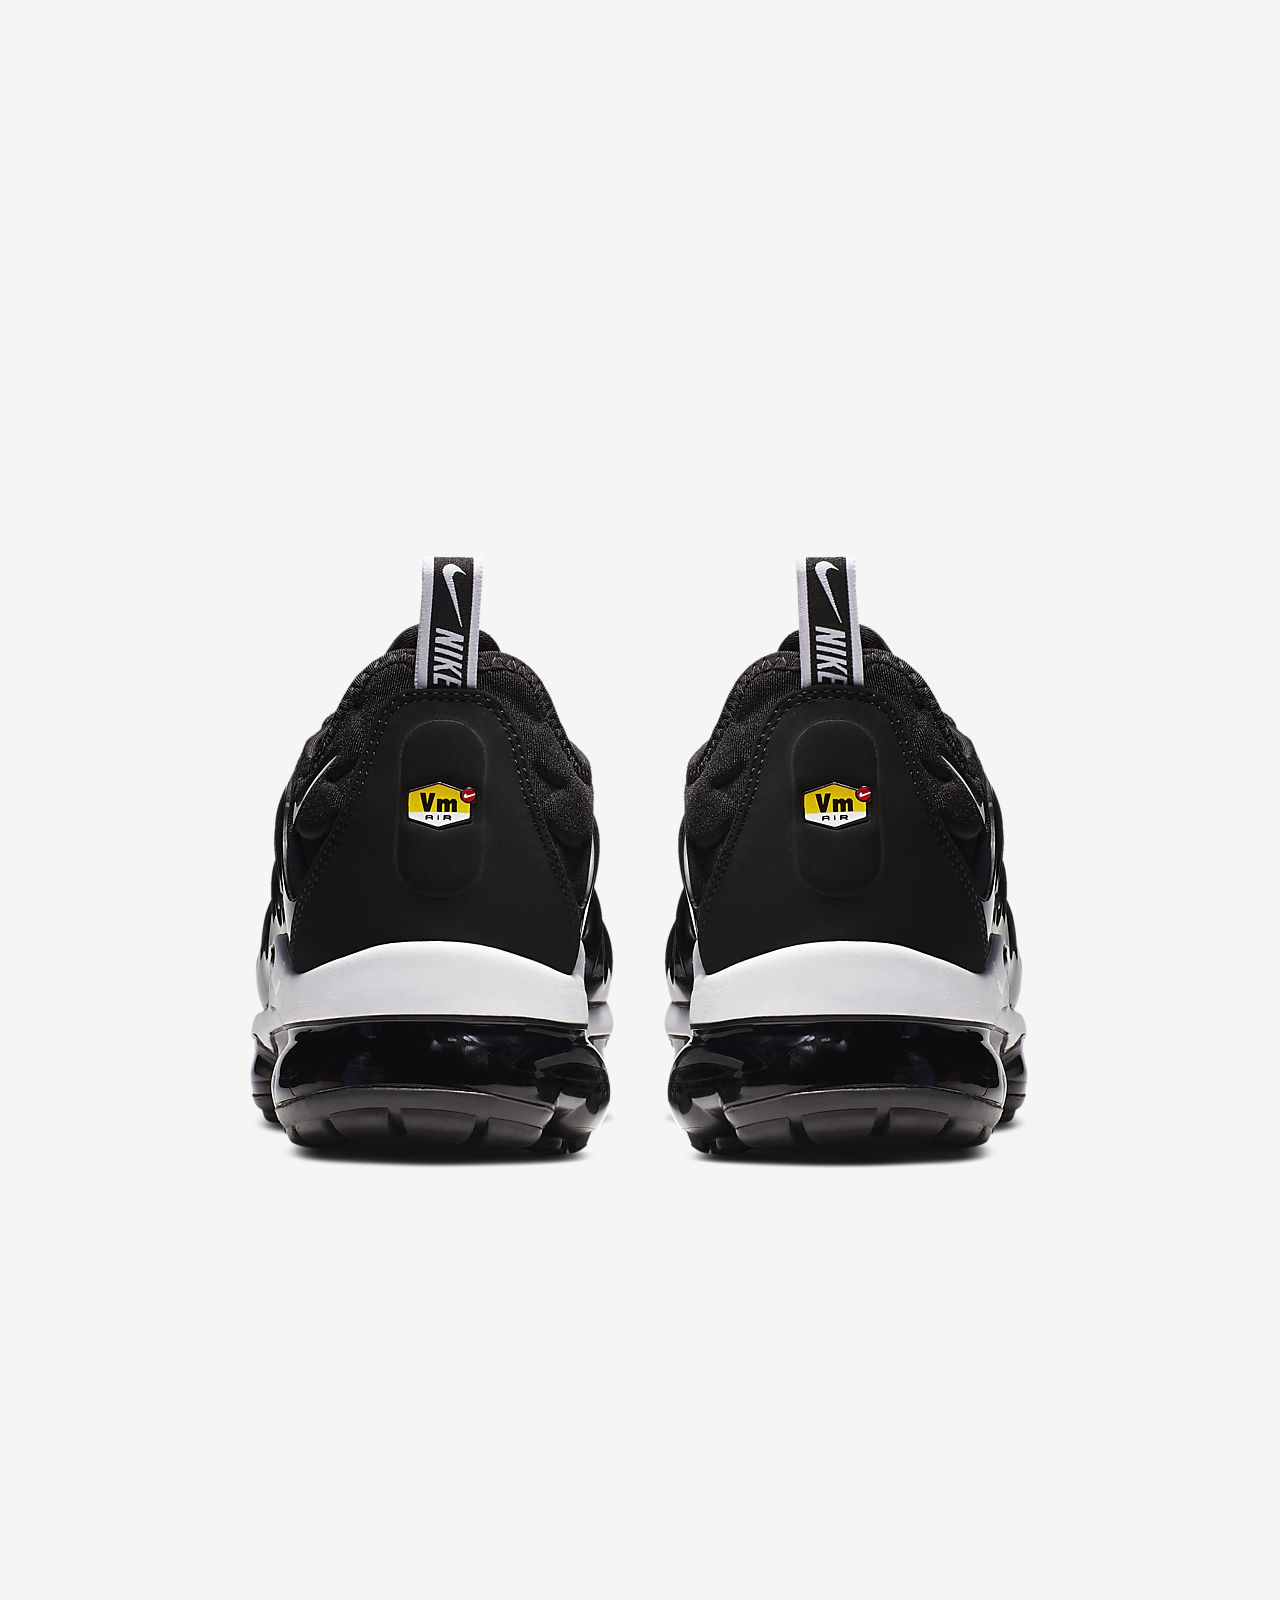 Nike Pour Chaussure Plus Air Vapormax HommeFr rdxQCeBoW